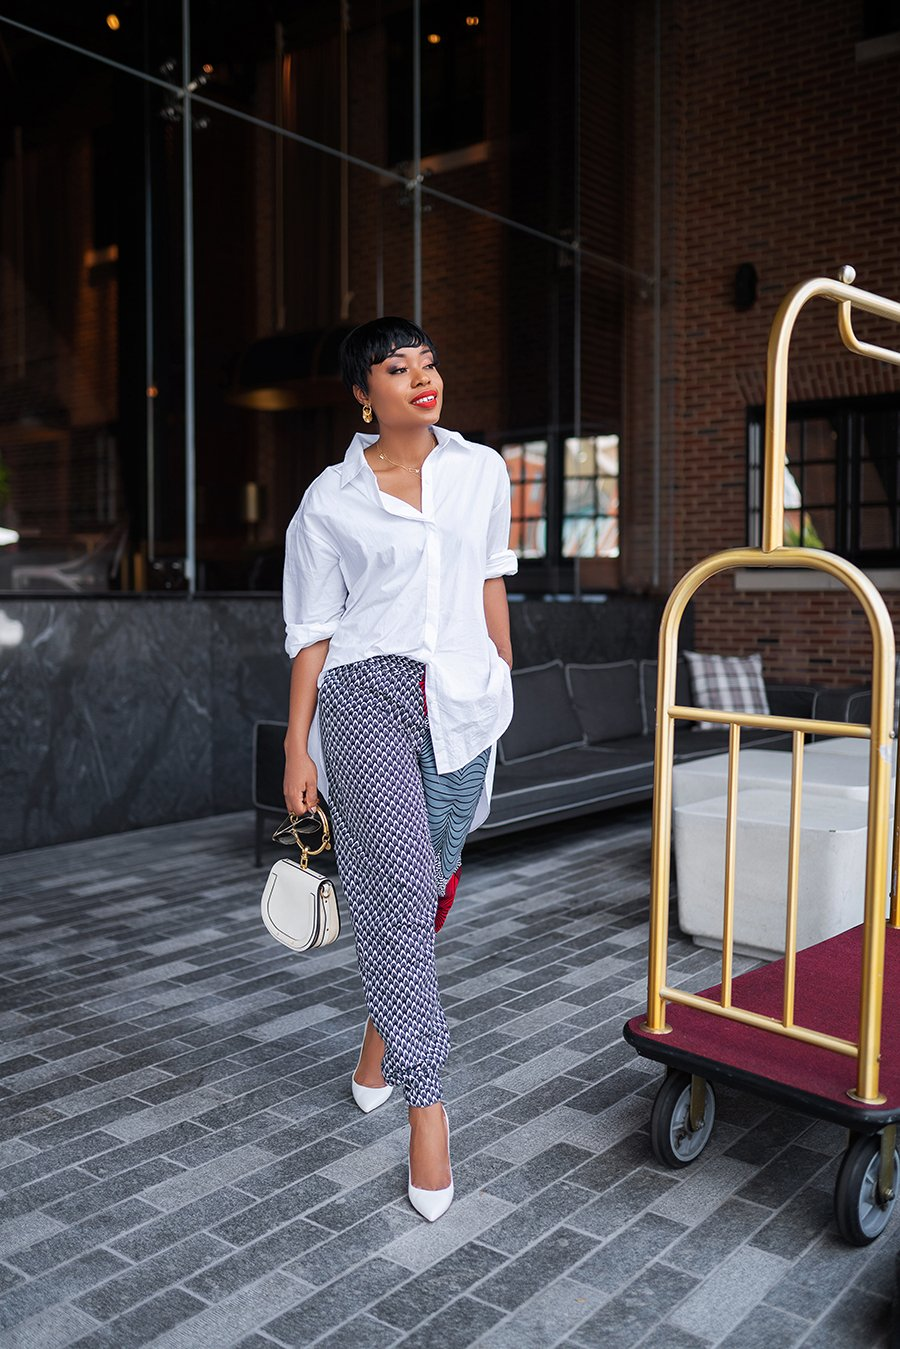 stella-adewunmi-of-jadore-fashion-blog-shares-chic-way-to-wear-ankara-joggers-oversized-white-shirt